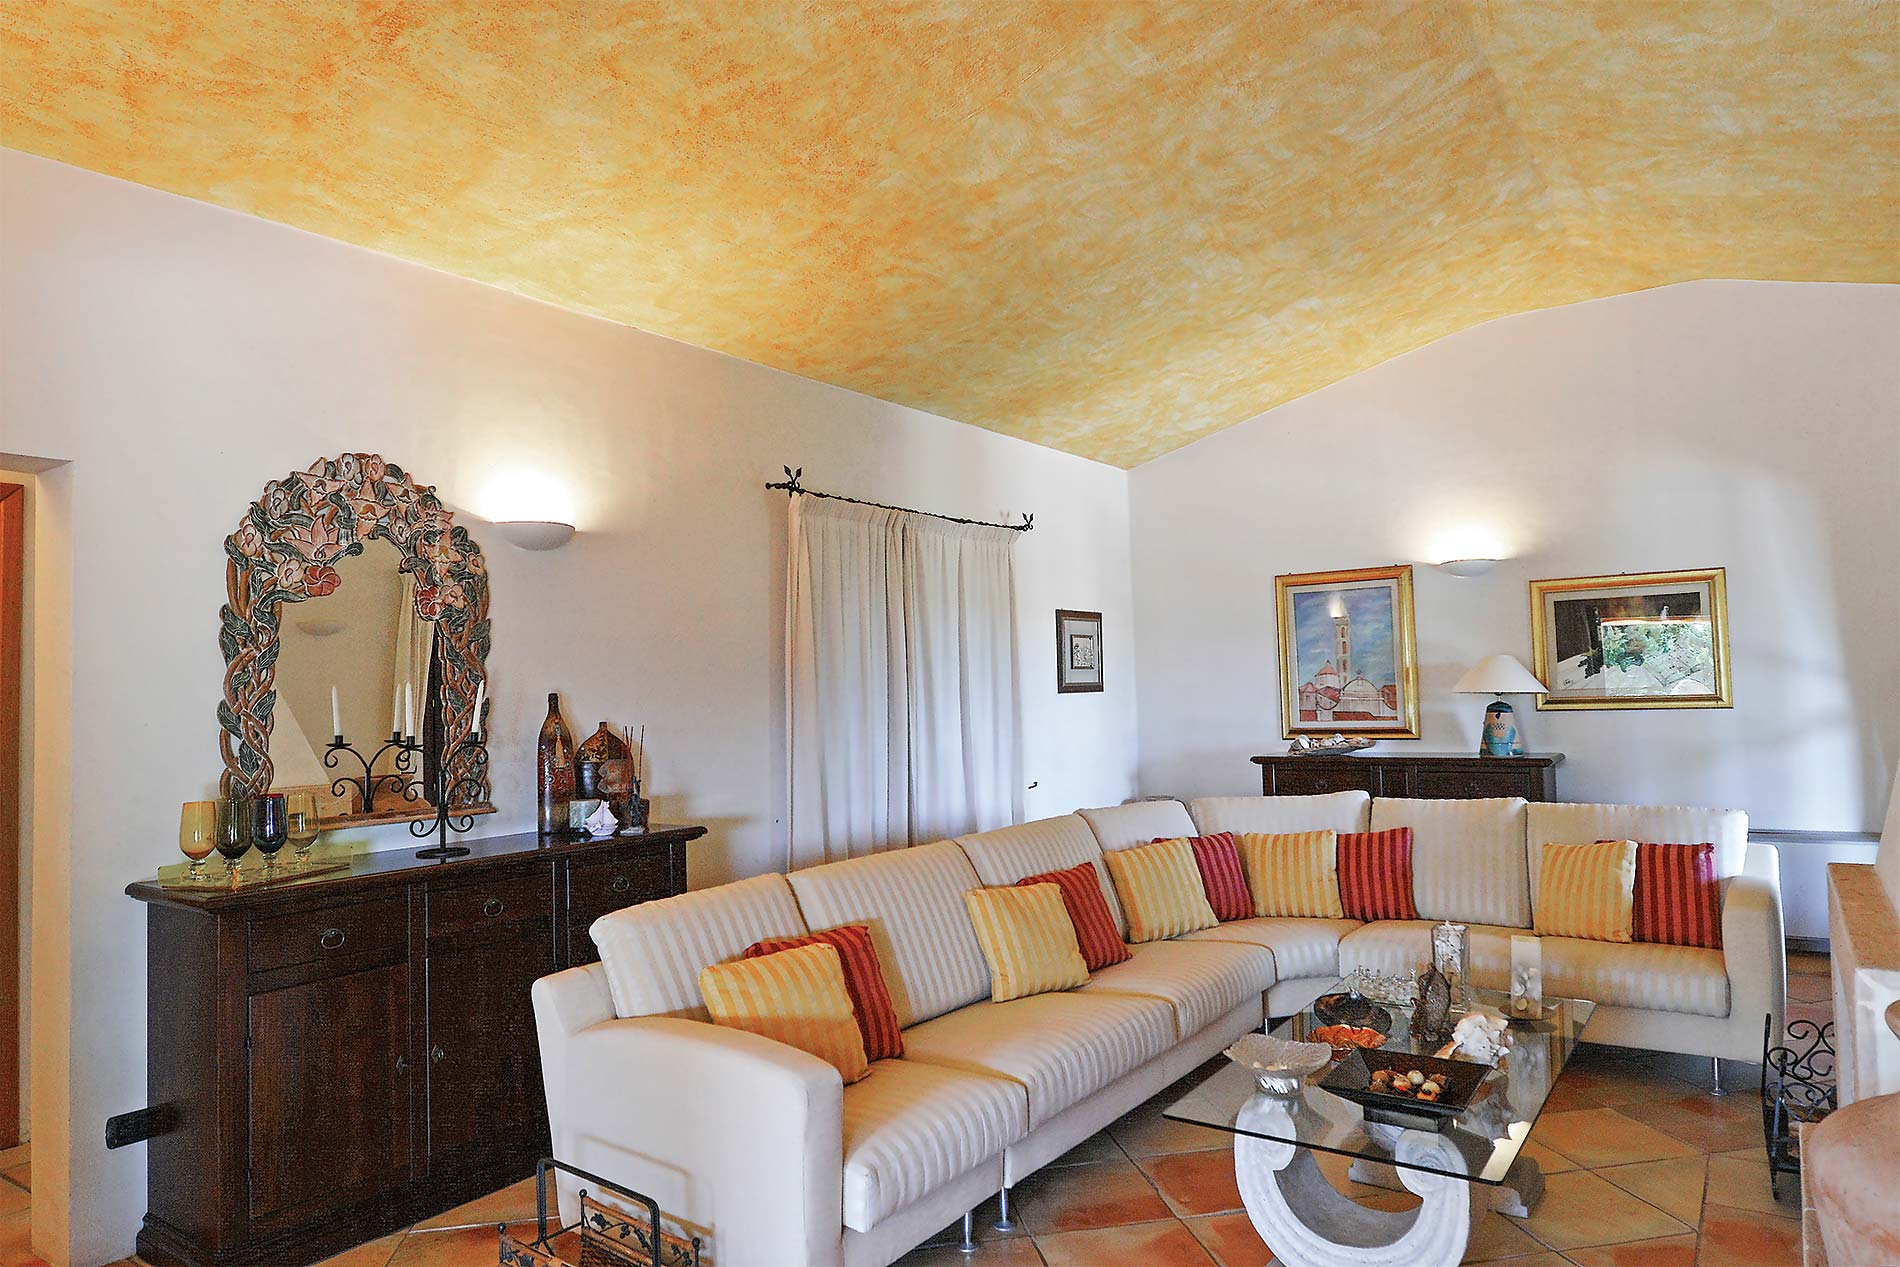 Villa le Mandorle in Baja Sardinia - sleeps 6 people